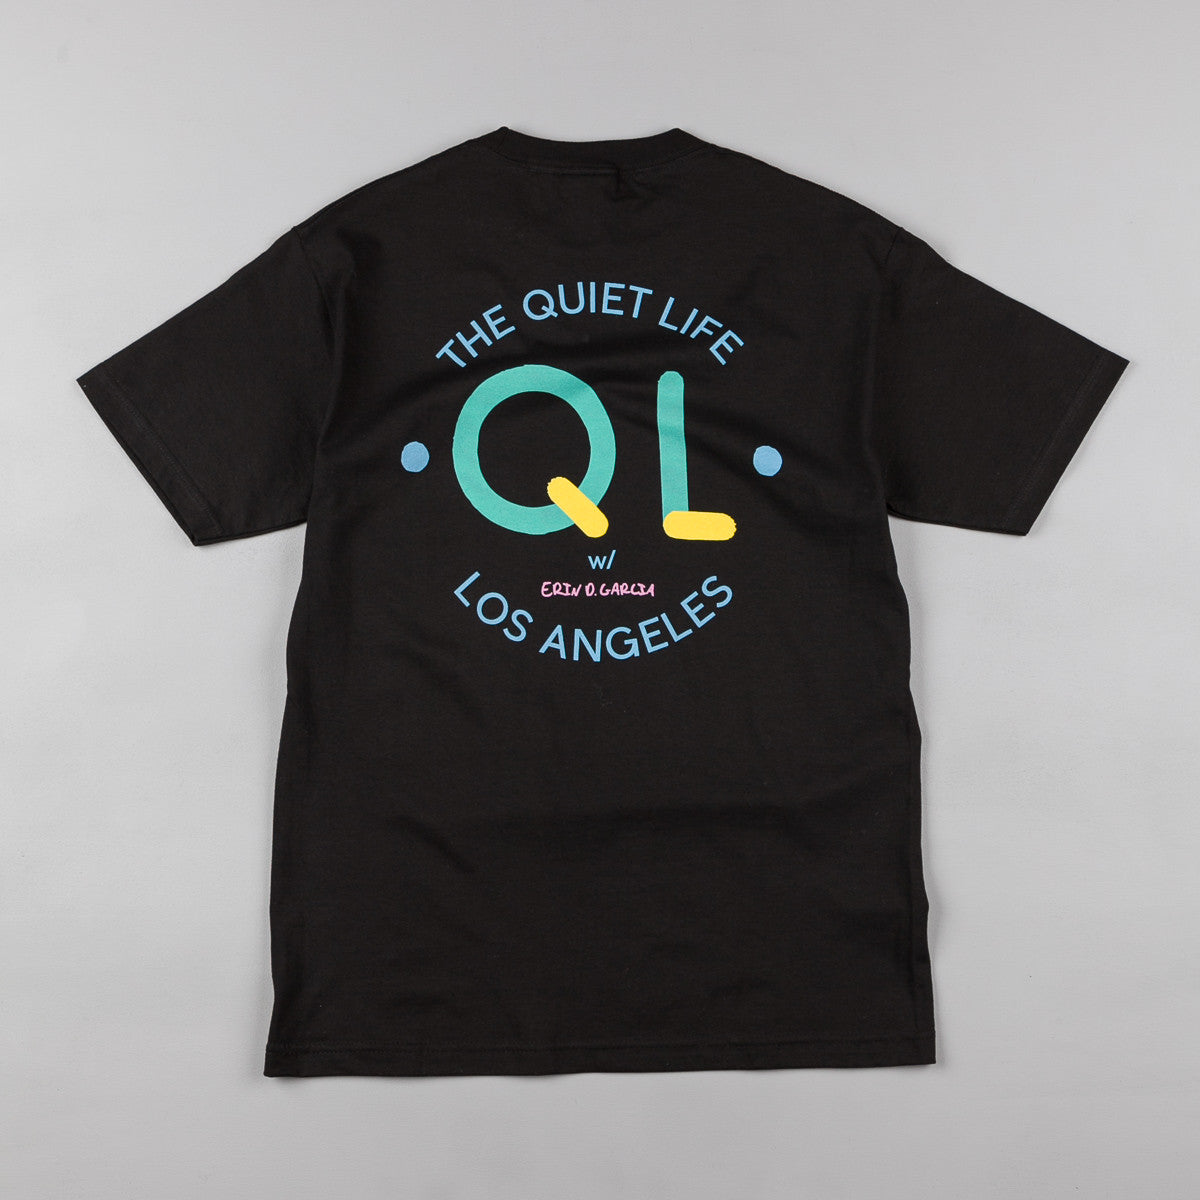 The Quiet Life Garcia Logo T-Shirt - Black